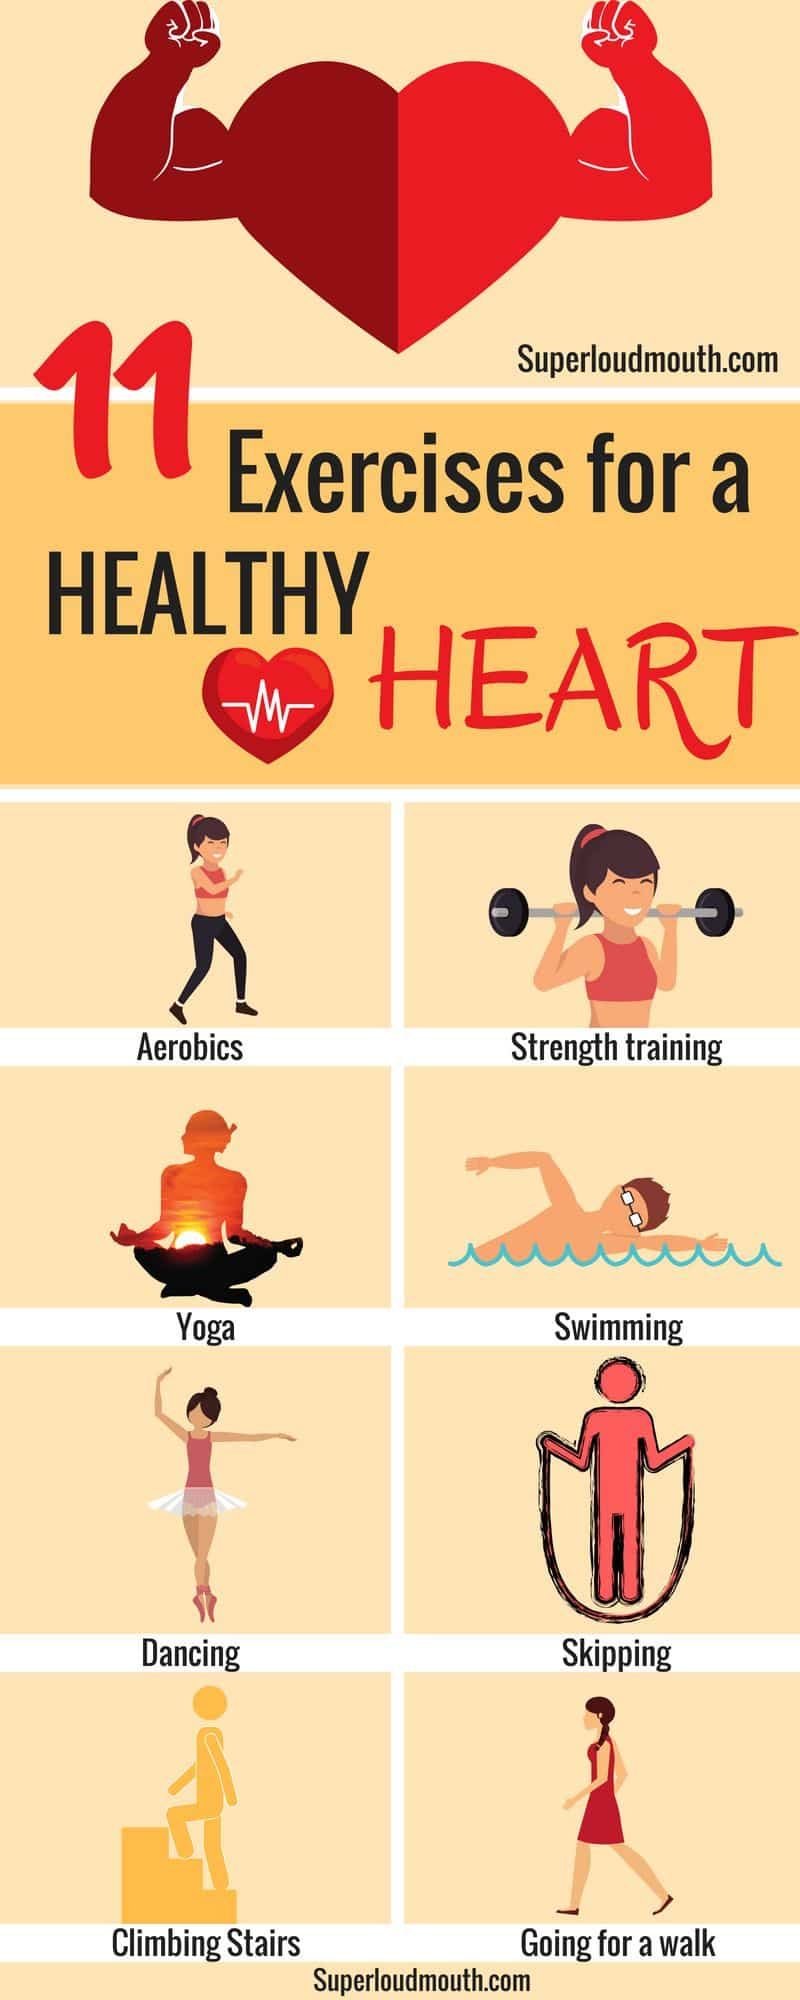 exercise-for-a-healthy-heart-4